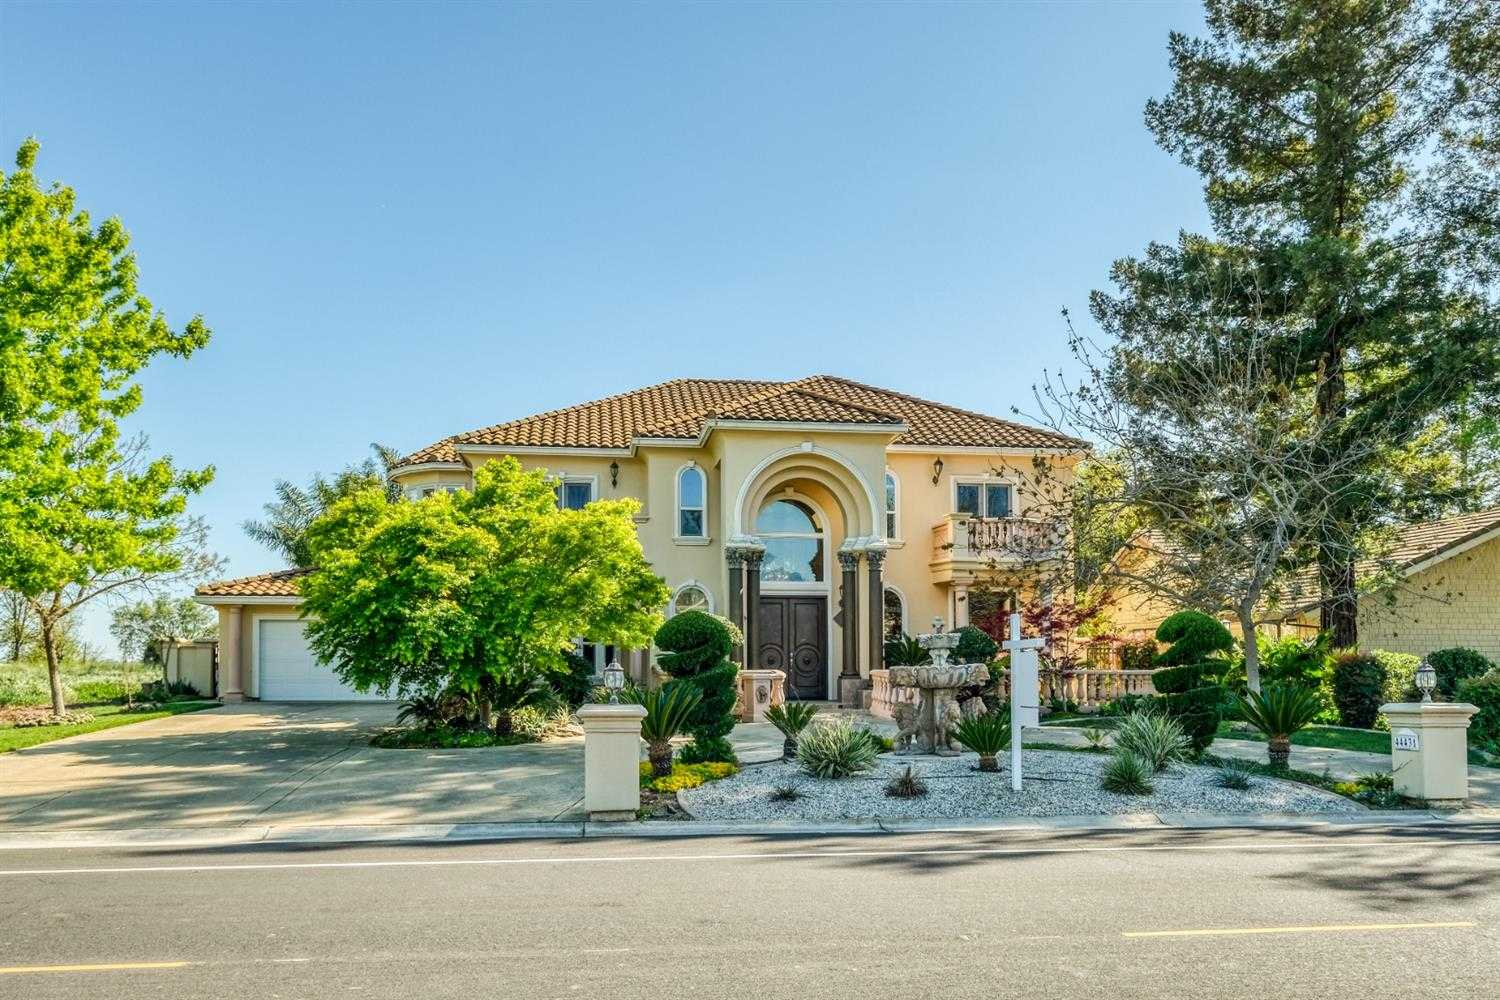 $1,950,000 - 5Br/5Ba -  for Sale in El Macero, El Macero